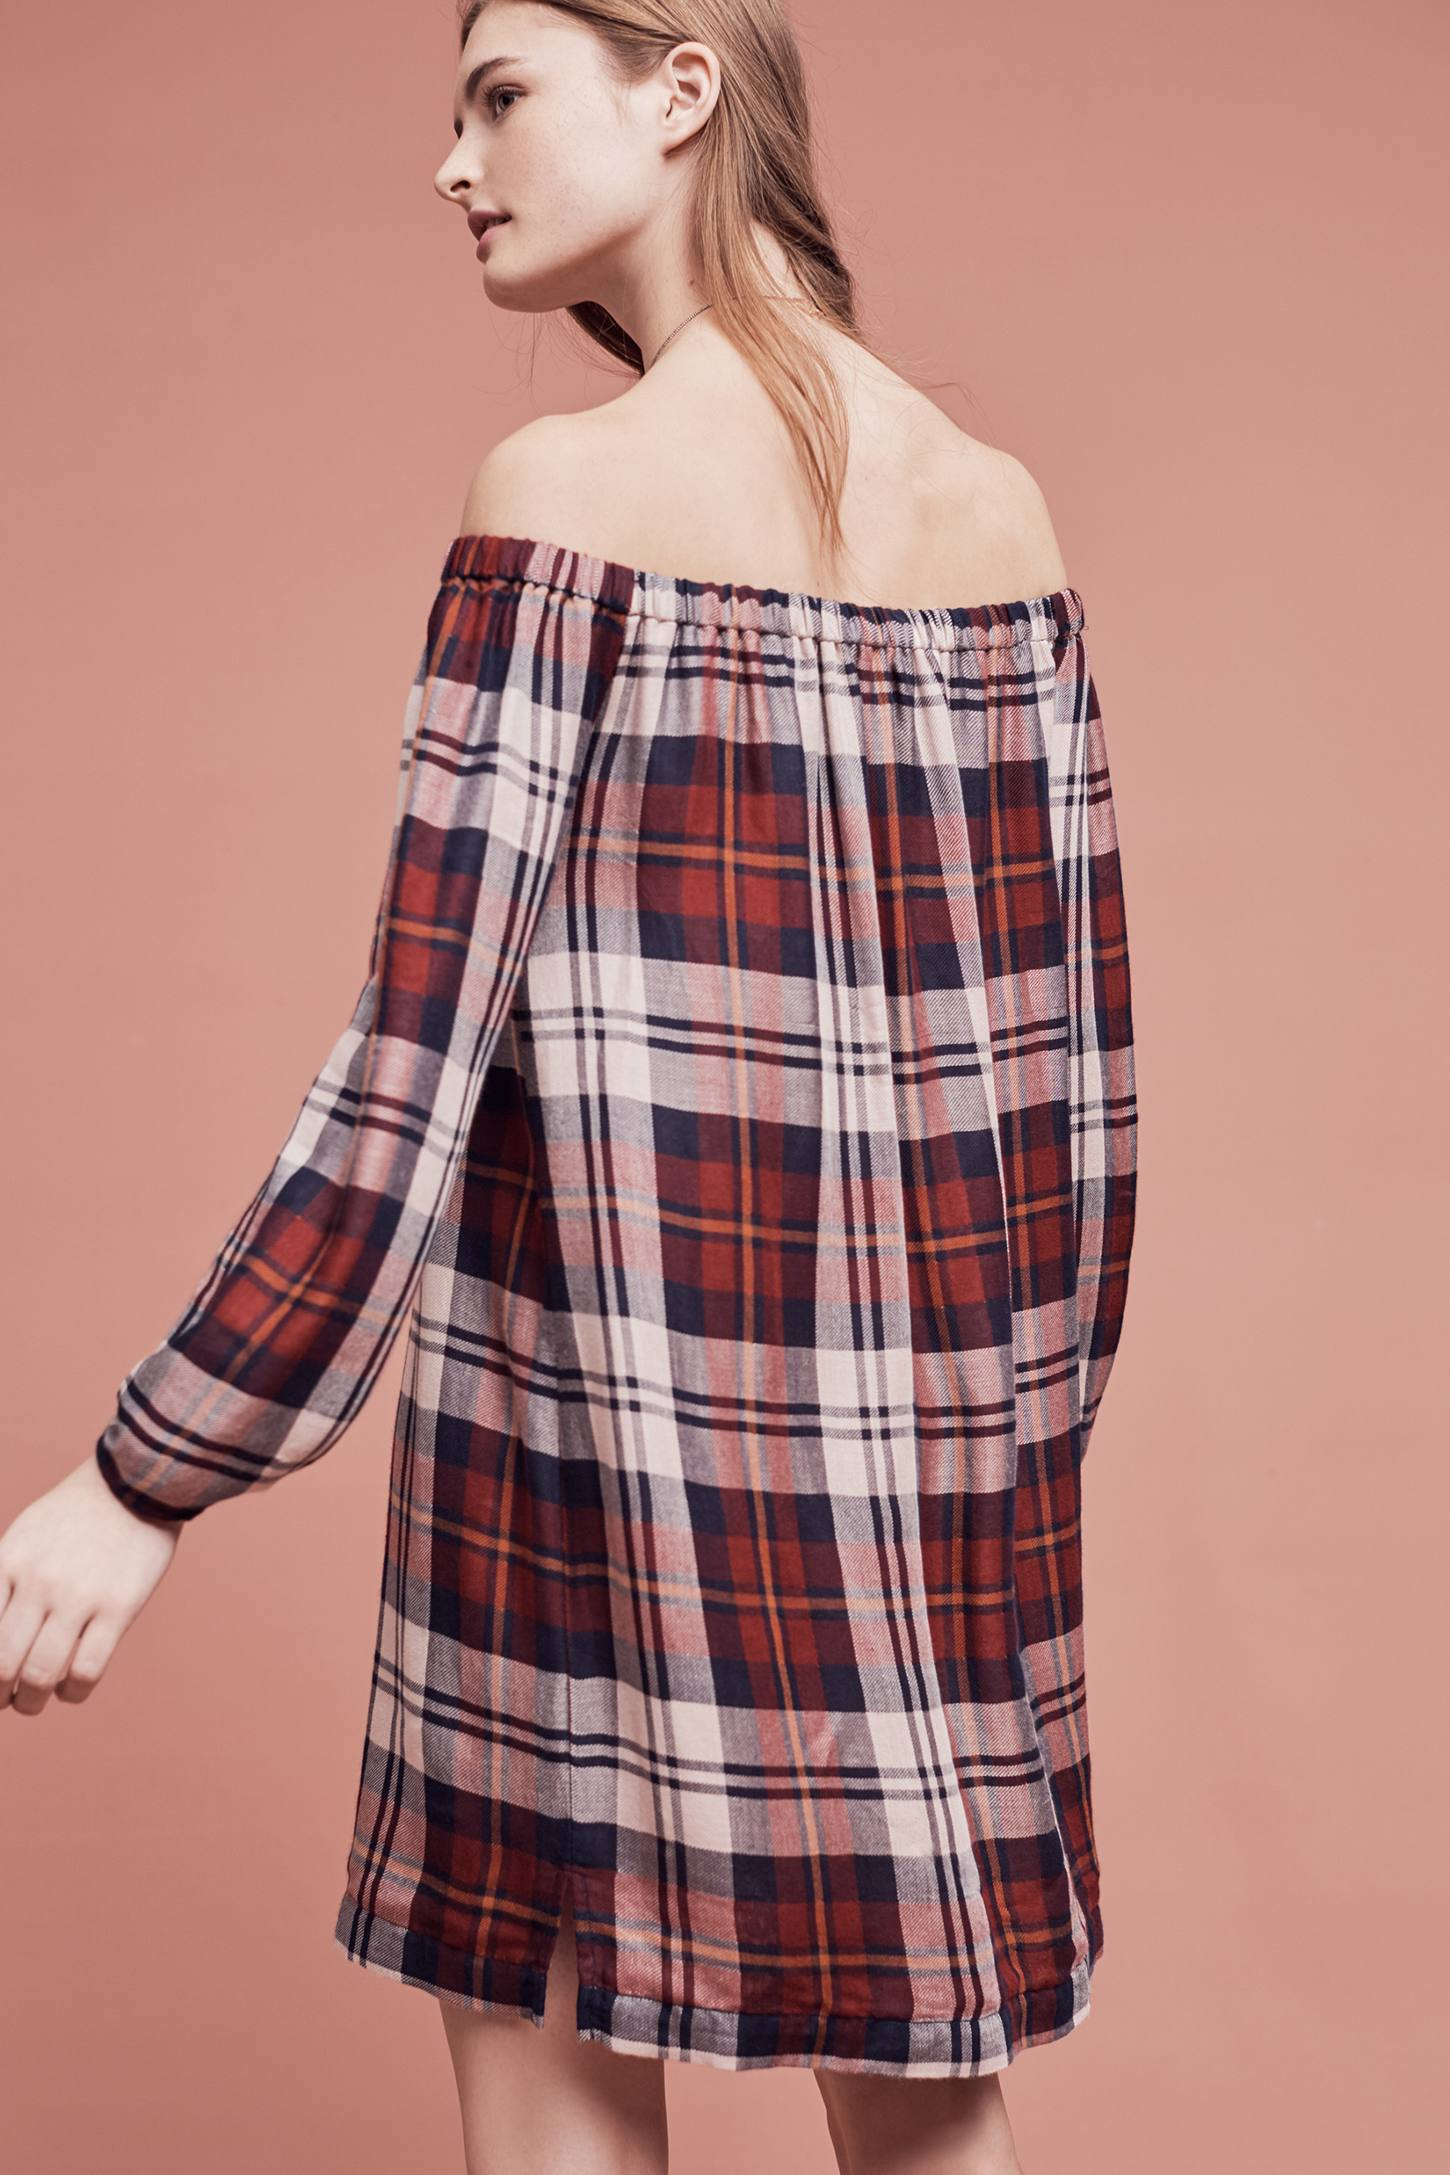 Slide View: 4: Plaid Off-The-Shoulder Tunic Dress